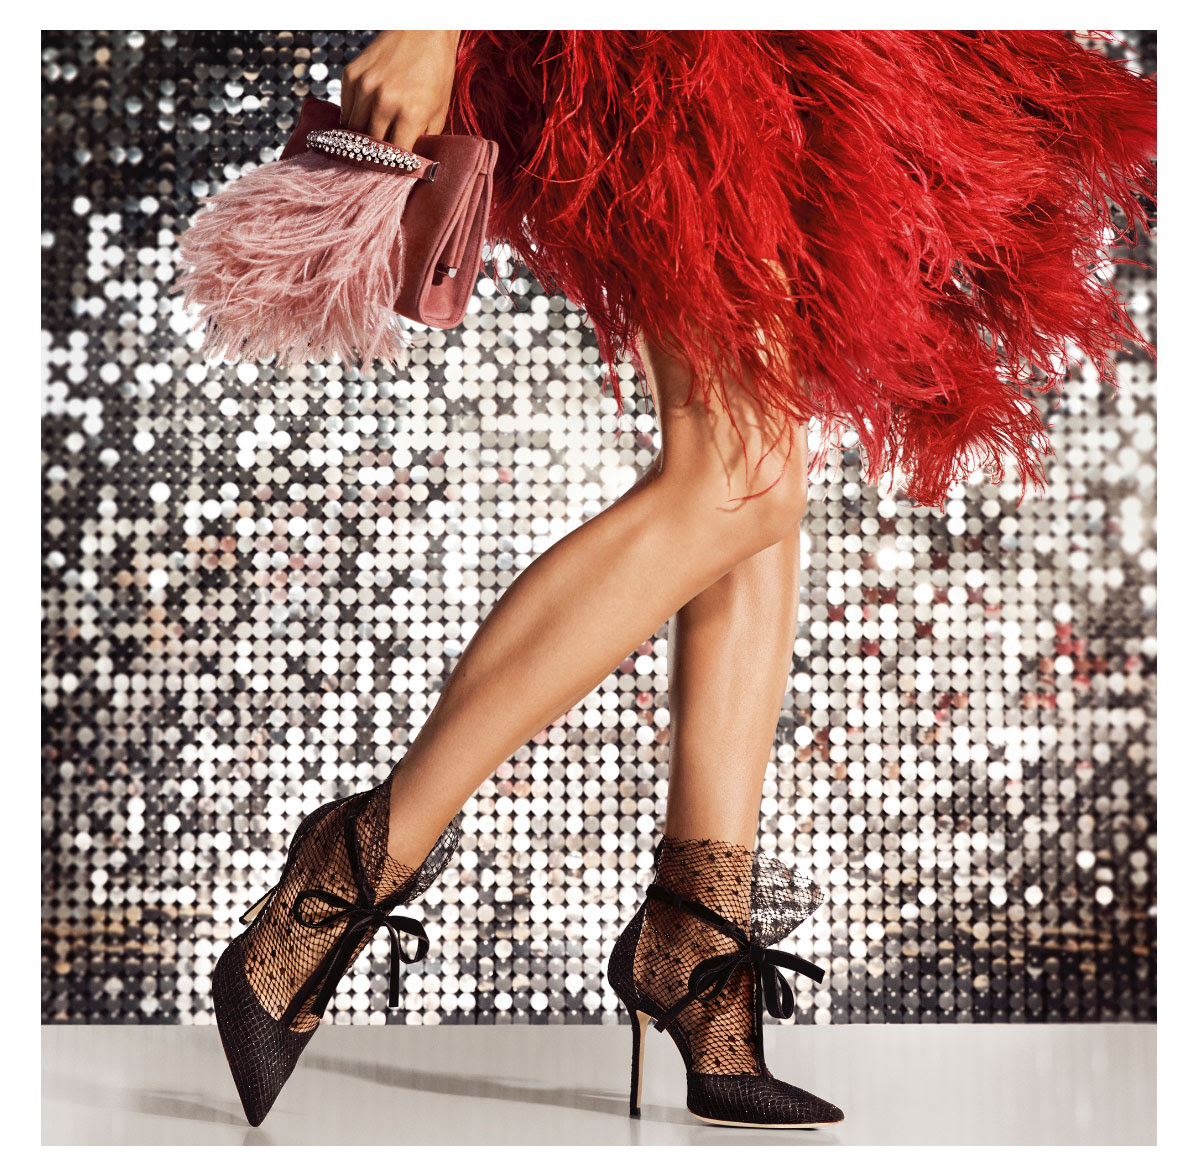 Jimmy Choo - The Ankle Boots To Wear Now